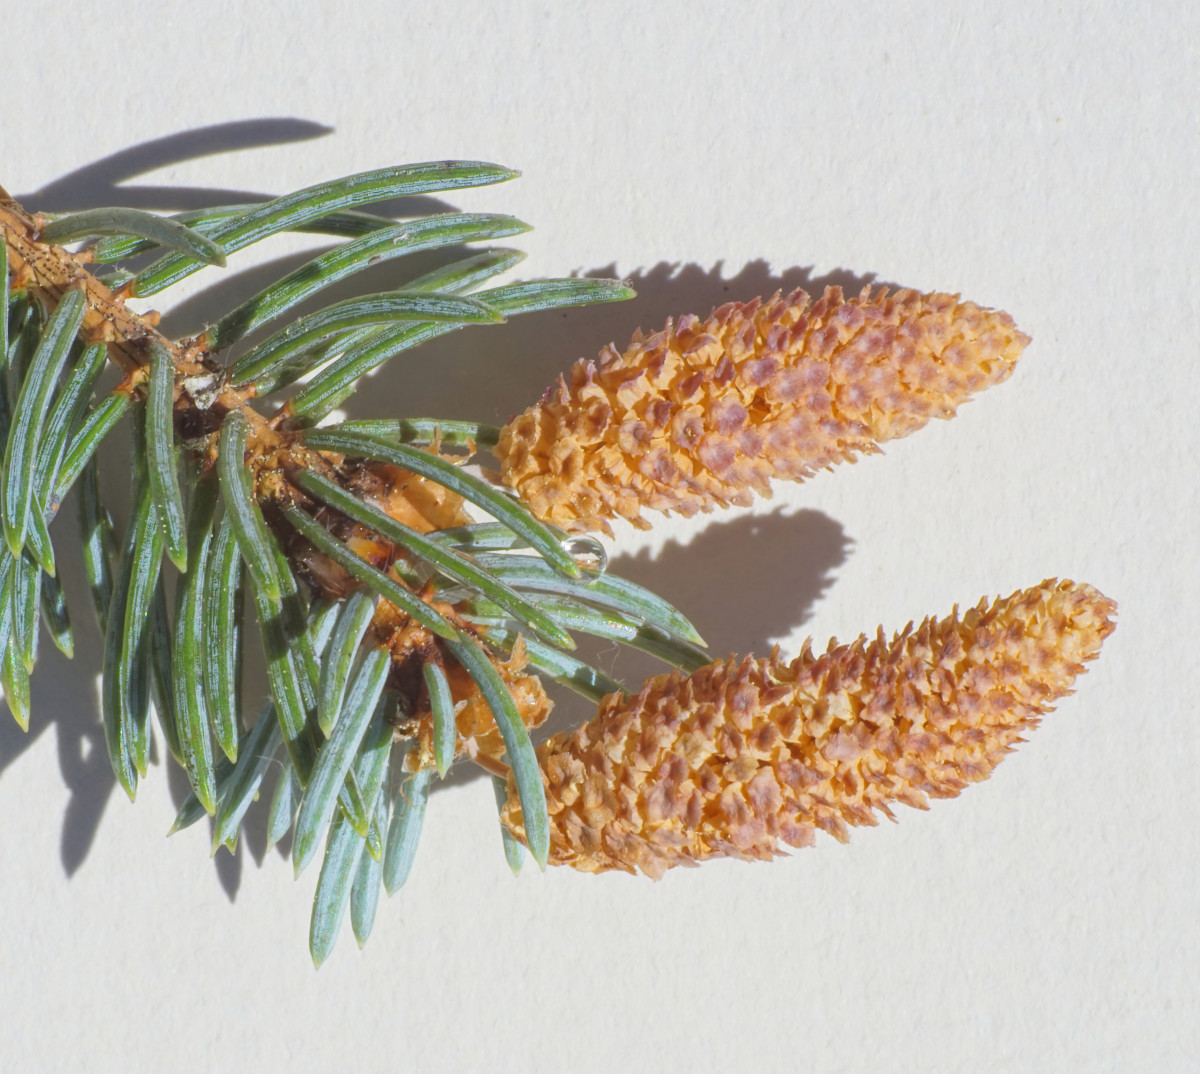 Blue Spruce Pollen Cones (male) Late Spring - Early Summer